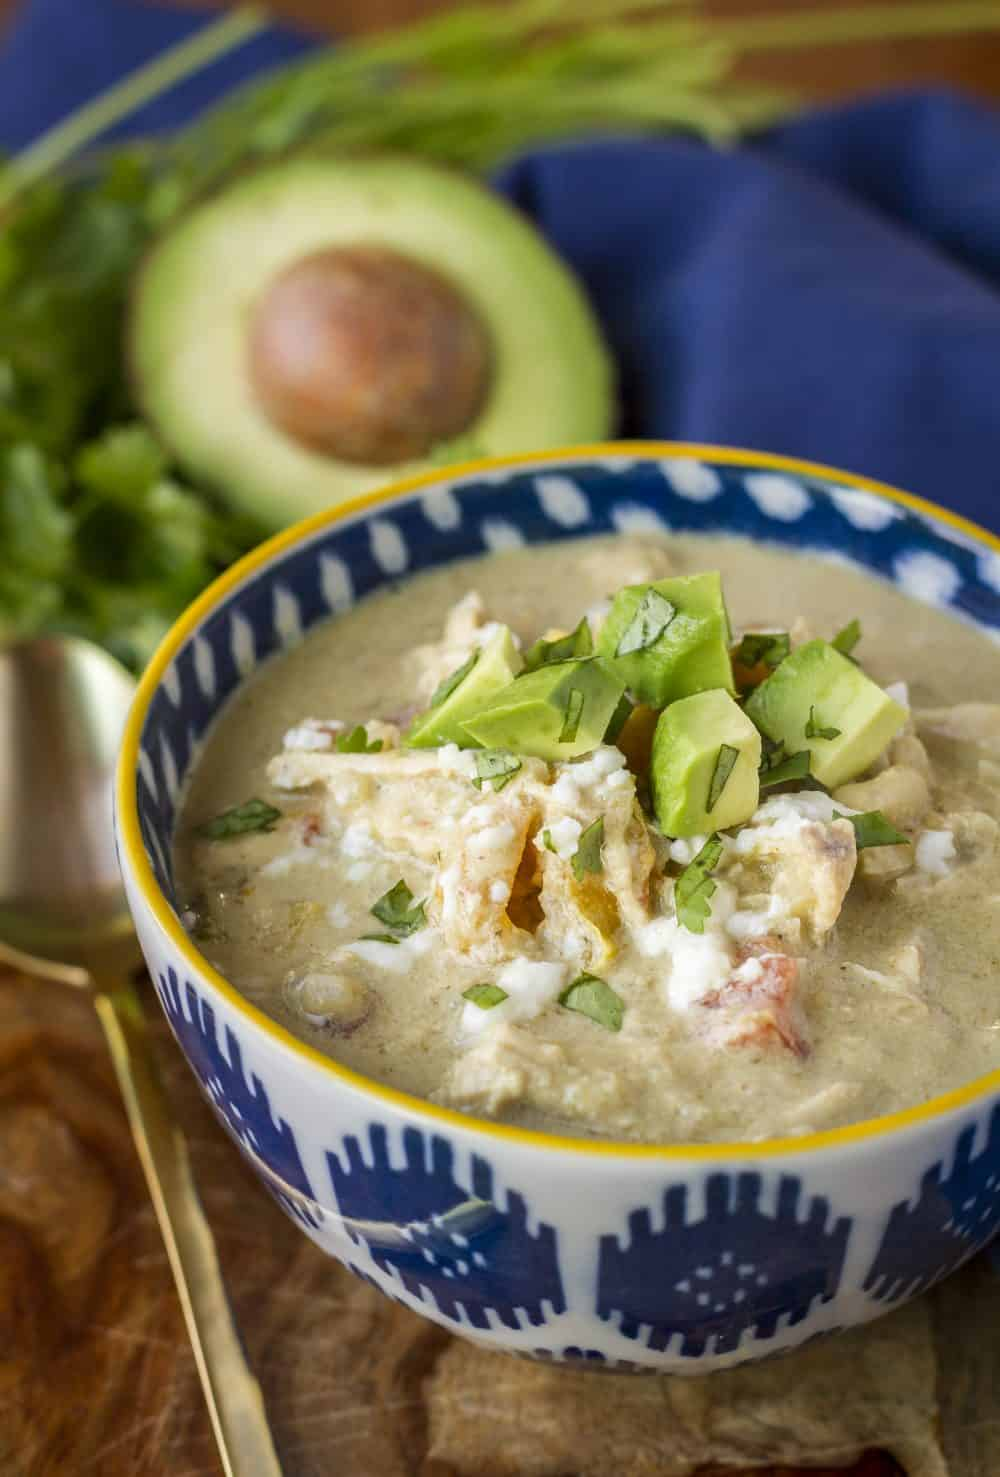 Creamy Verde Chicken Chili -- this delicious low carb chicken chili is packed with flavor, yet has only one net carb per serving… Make it in your slow cooker or your Instant Pot for dinner tonight! | skinny chicken chili | crockpot chicken chili | chicken chili recipe | healthy chicken chili | cream cheese chicken chili | find the recipe on unsophisticook.com